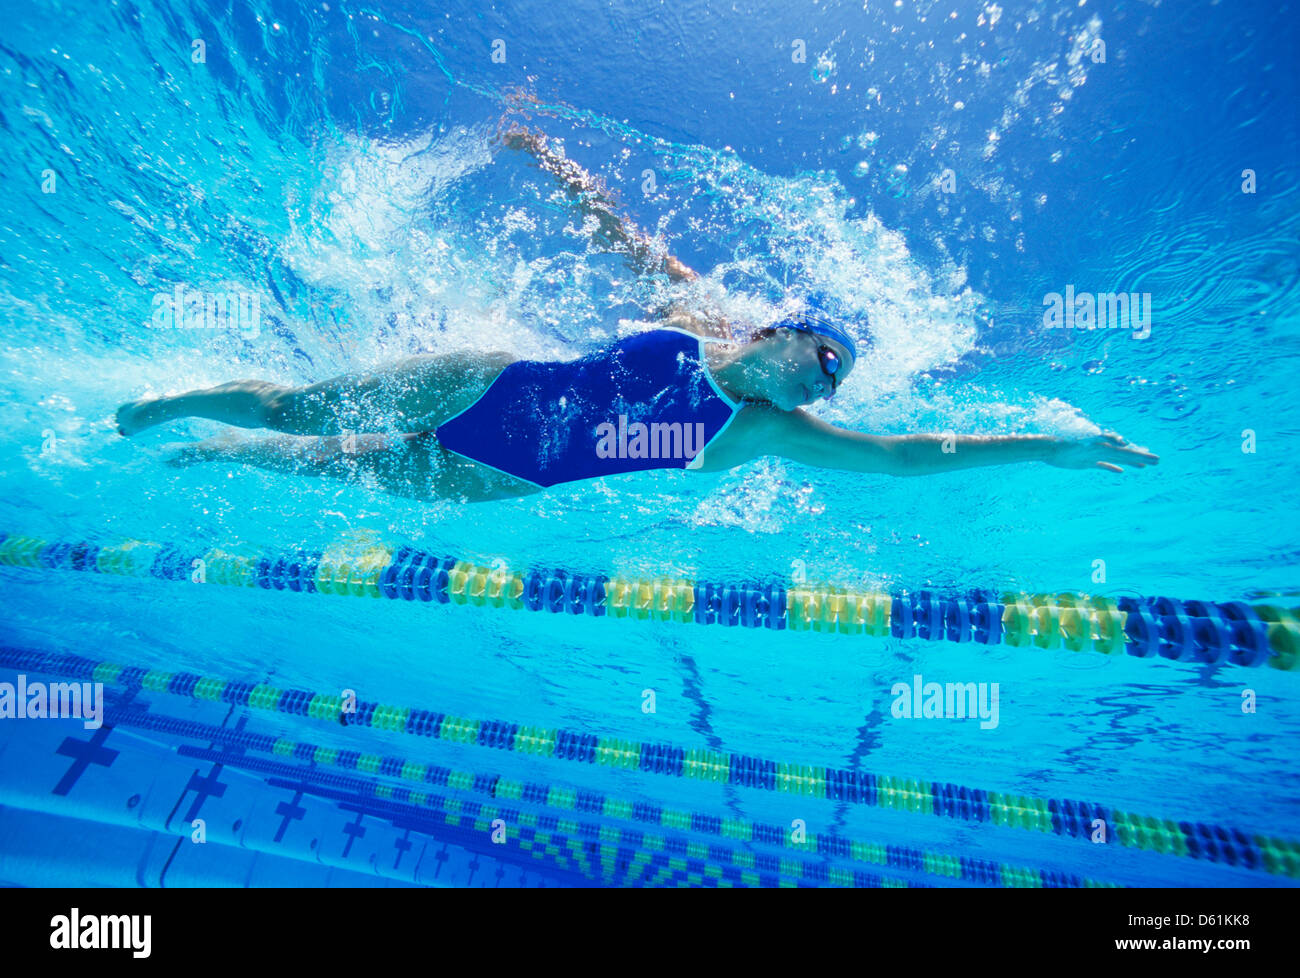 Female swimmer wearing United States swimsuit while swimming in pool - Stock Image